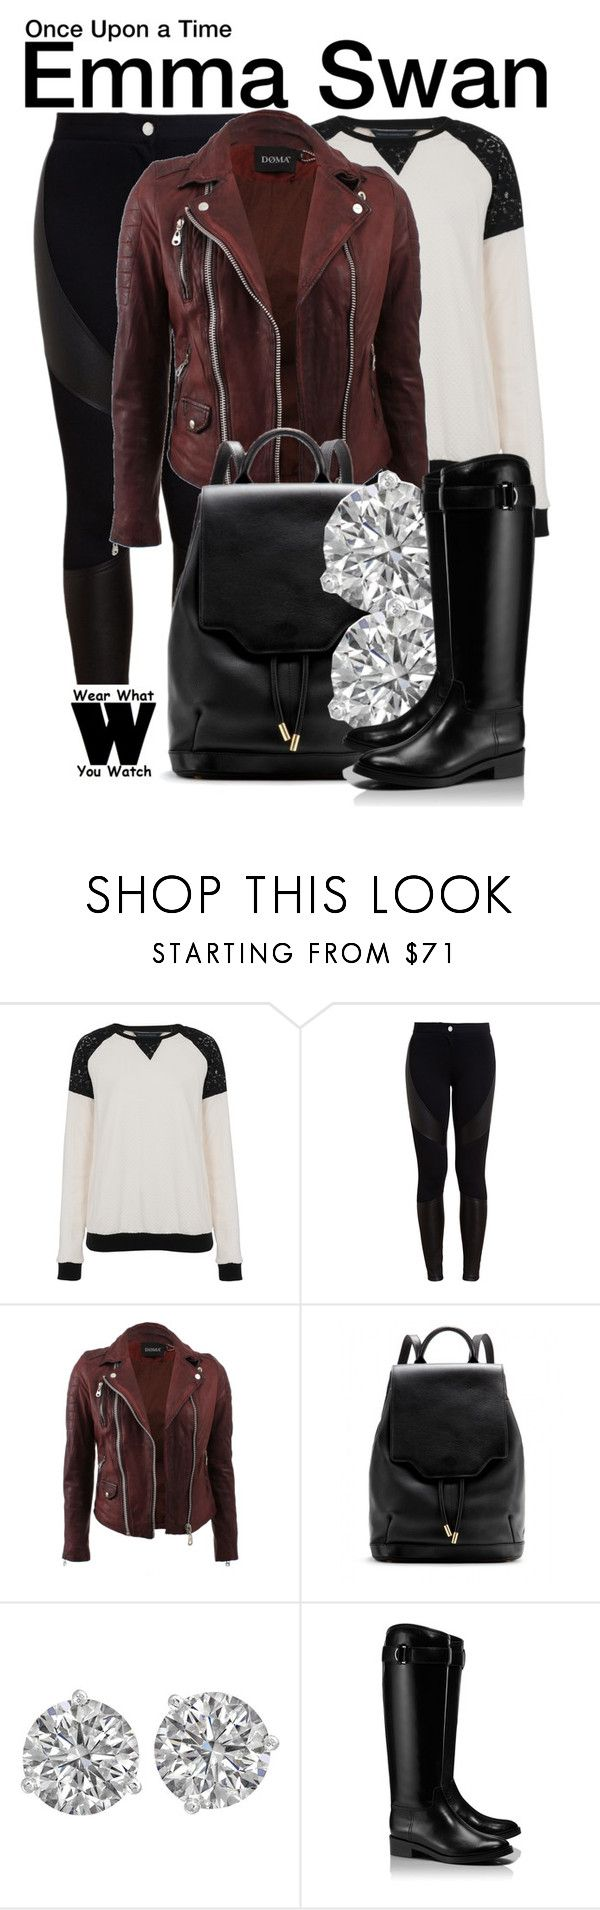 Once Upon a Time by wearwhatyouwatch on Polyvore featuring moda, French Connection, Doma, Givenchy, Tory Burch, rag & bone, television and wearwhatyouwatch